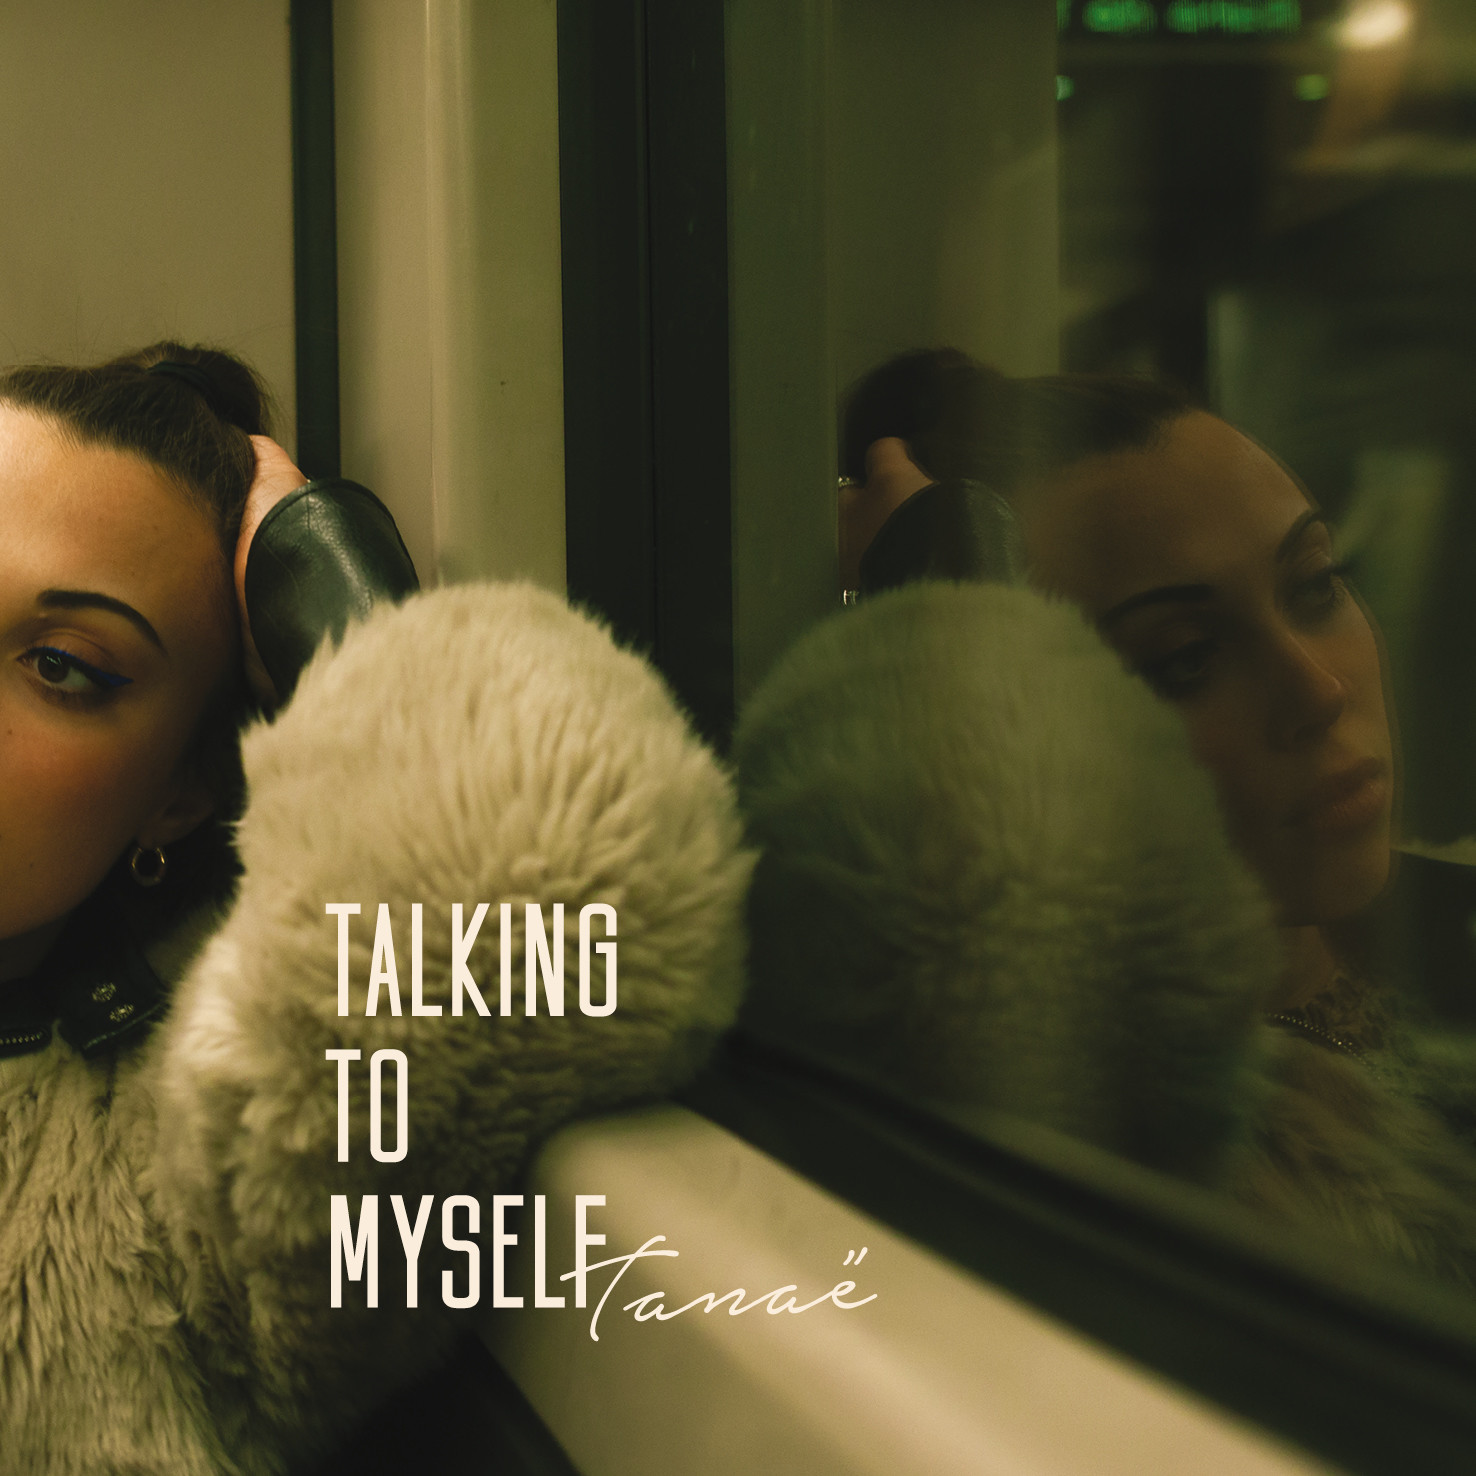 Tanaë - Talking To Myself